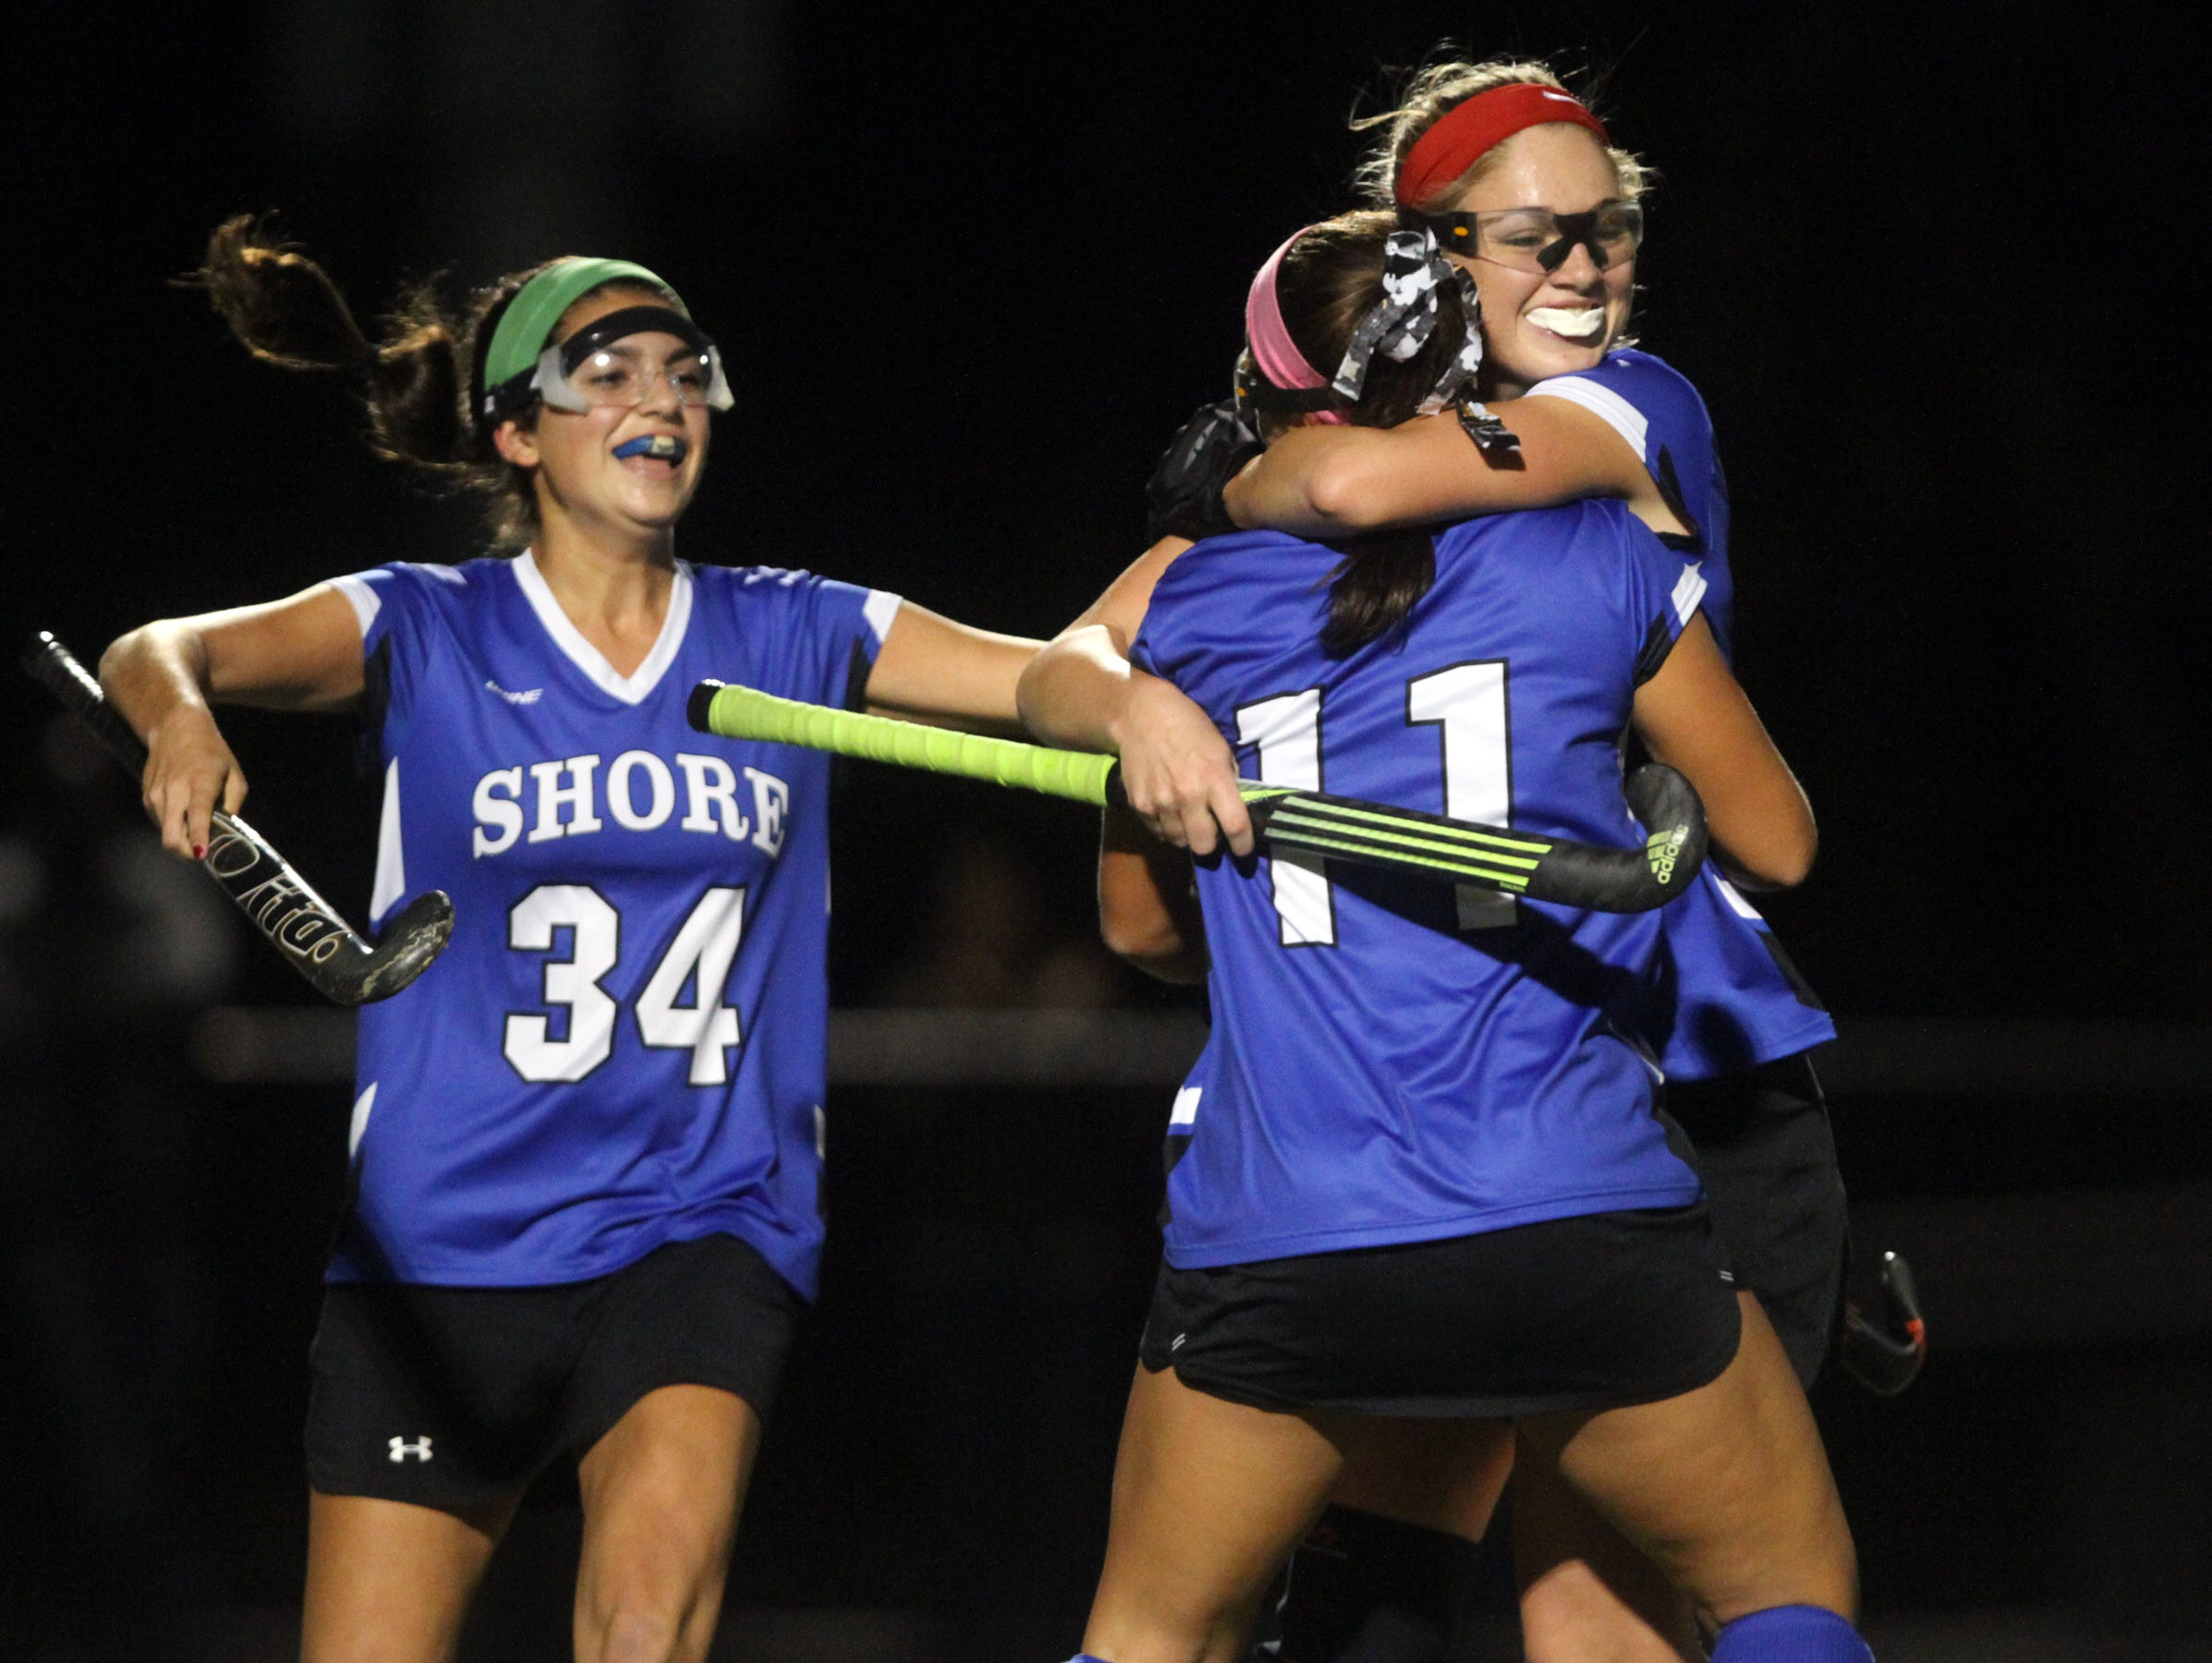 Shore Regional's Annie Deusch (11) celebrates a first half goal with teammates Jessica Welch and Kelsey O'Neill (34), Wednesday, November 11, 2015, at A.L. Johnson in Clark.